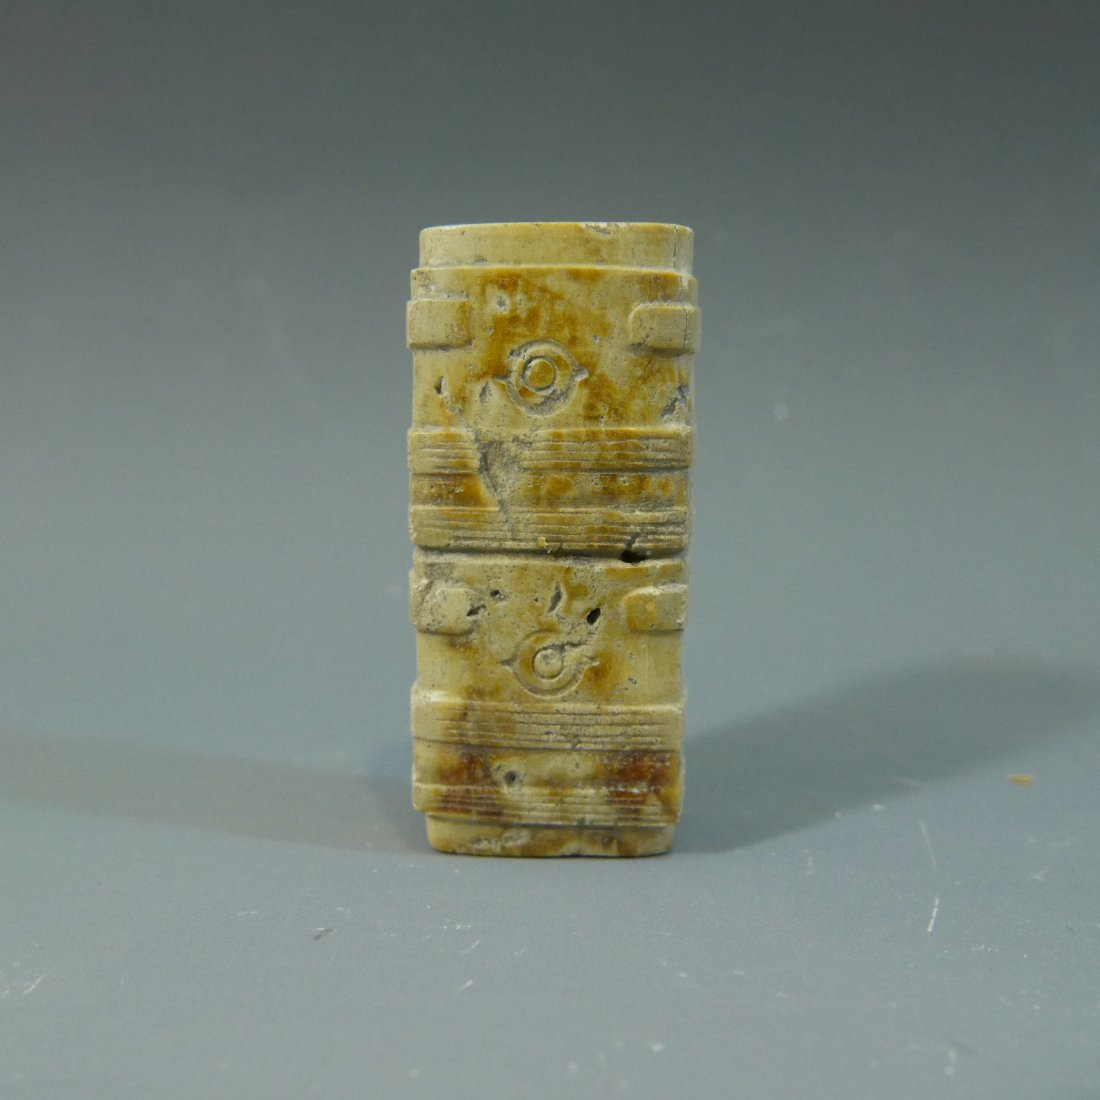 ANTIQUE CHINESE CARVED JADE CONG TUBE NEOLITHIC PERIOD - 2